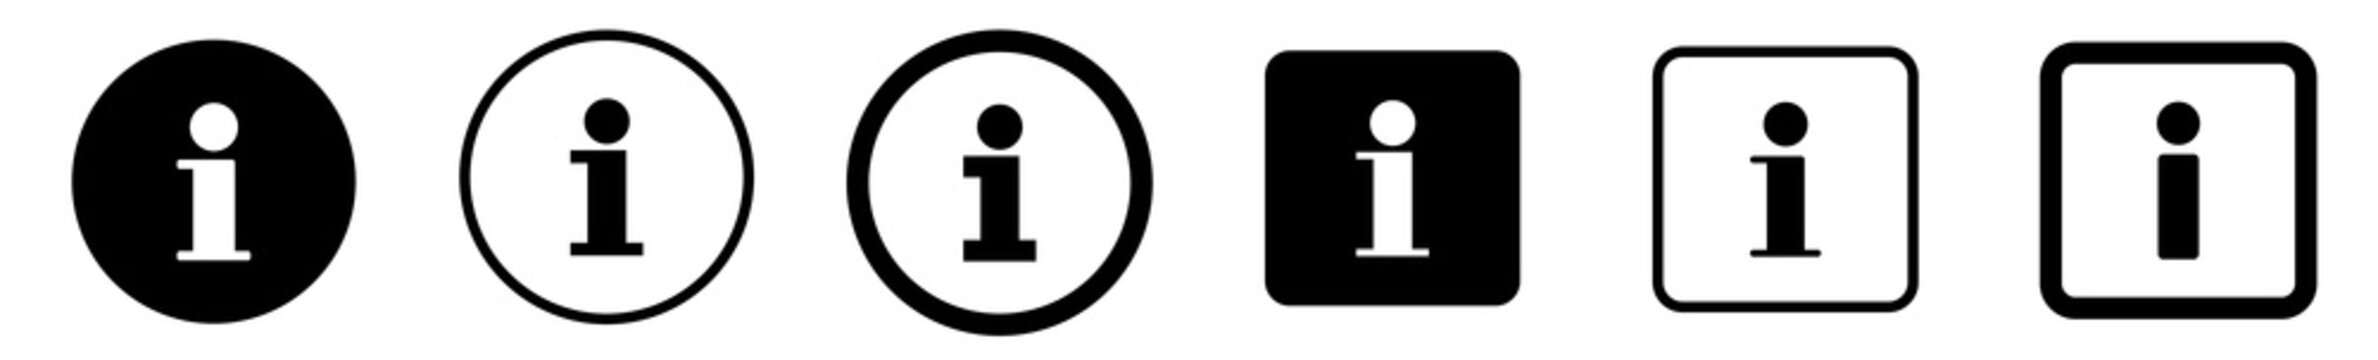 Info Point Icon Black | Information Illustration | i Point Symbol | Help Logo | Hint Sign | Isolated | Variations